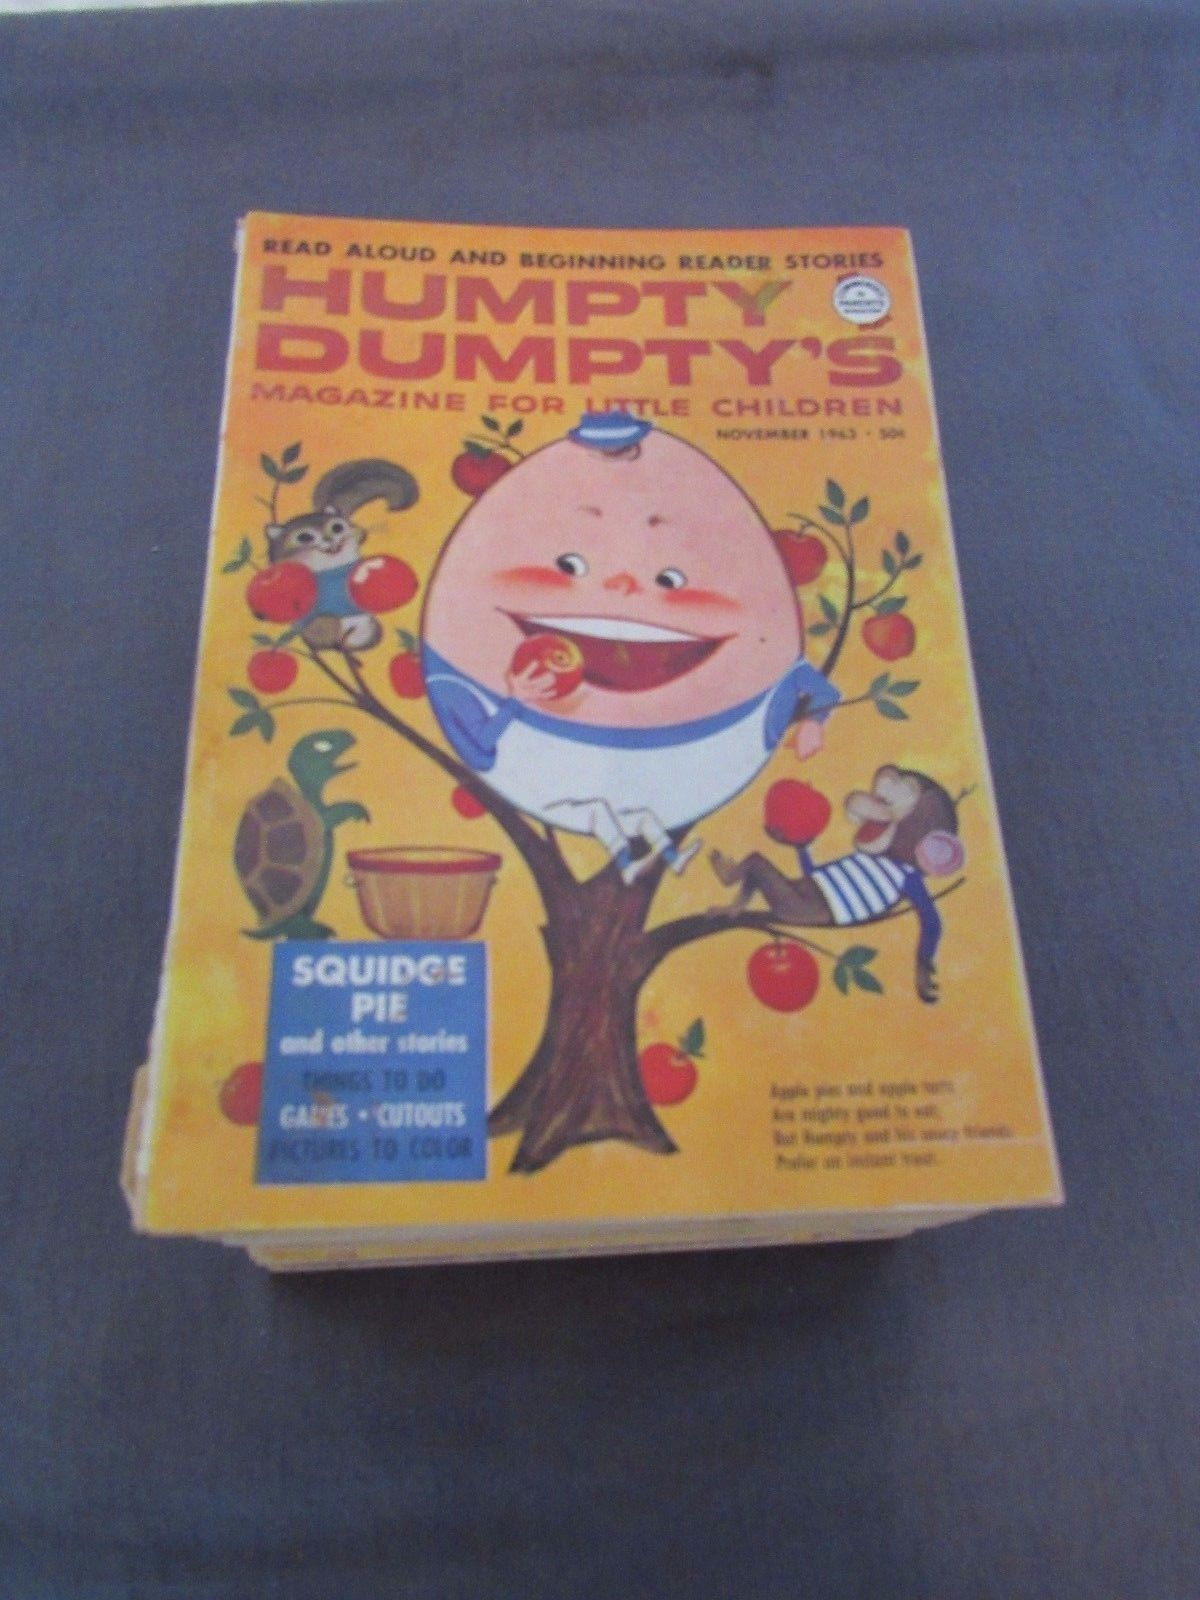 Vintage Lot of 10 Humpty Dumpty's Magazine for Little Children 1956 - 1965